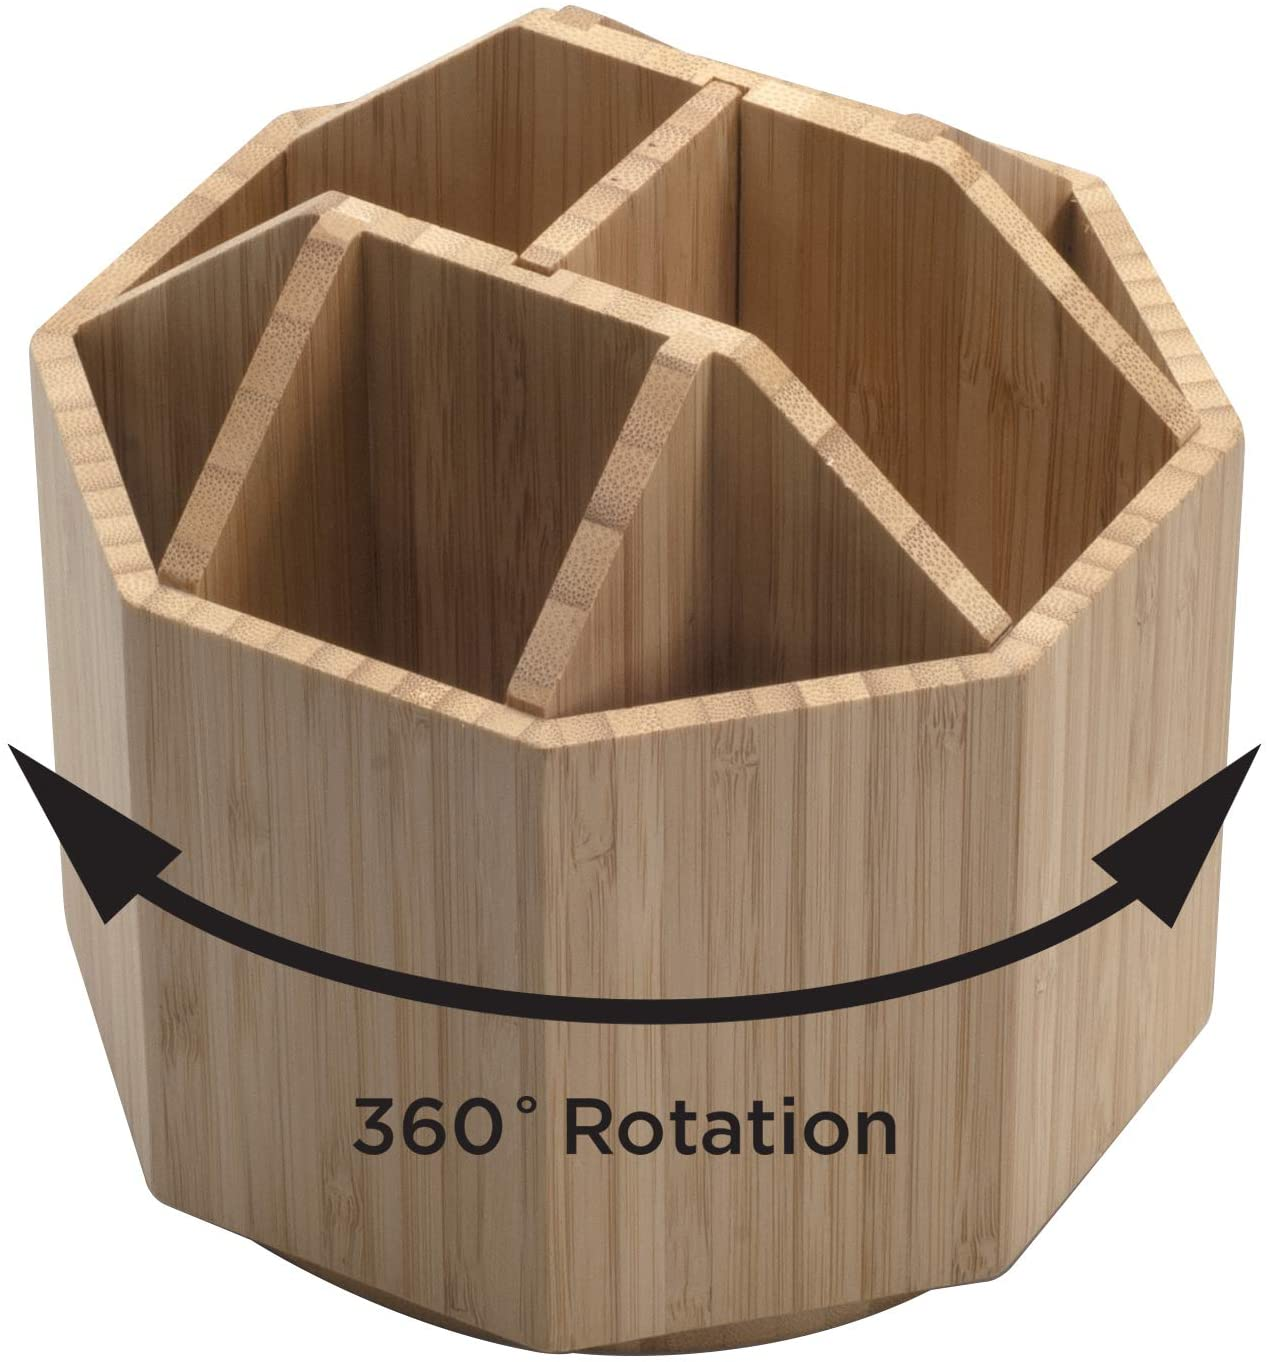 Bamboo Rotating Utensil Holder & Kitchen Organizer, Multiple Compartments, 8 Sections, store Forks, Serving Spoons, Knives, and other cooking tools with Removable Divider for Customized Storage: Home Improvement